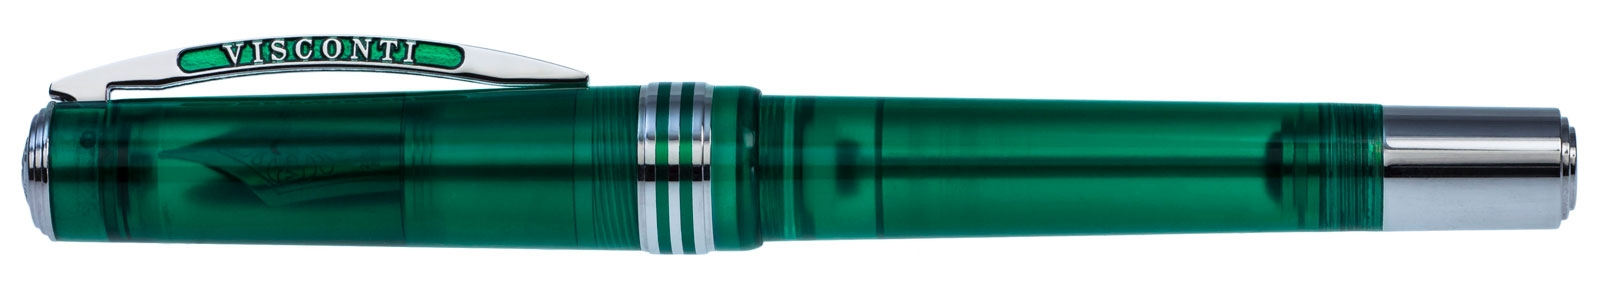 Visconti Manhattan Teal Northern Lights Limited Edition Fountain Pen